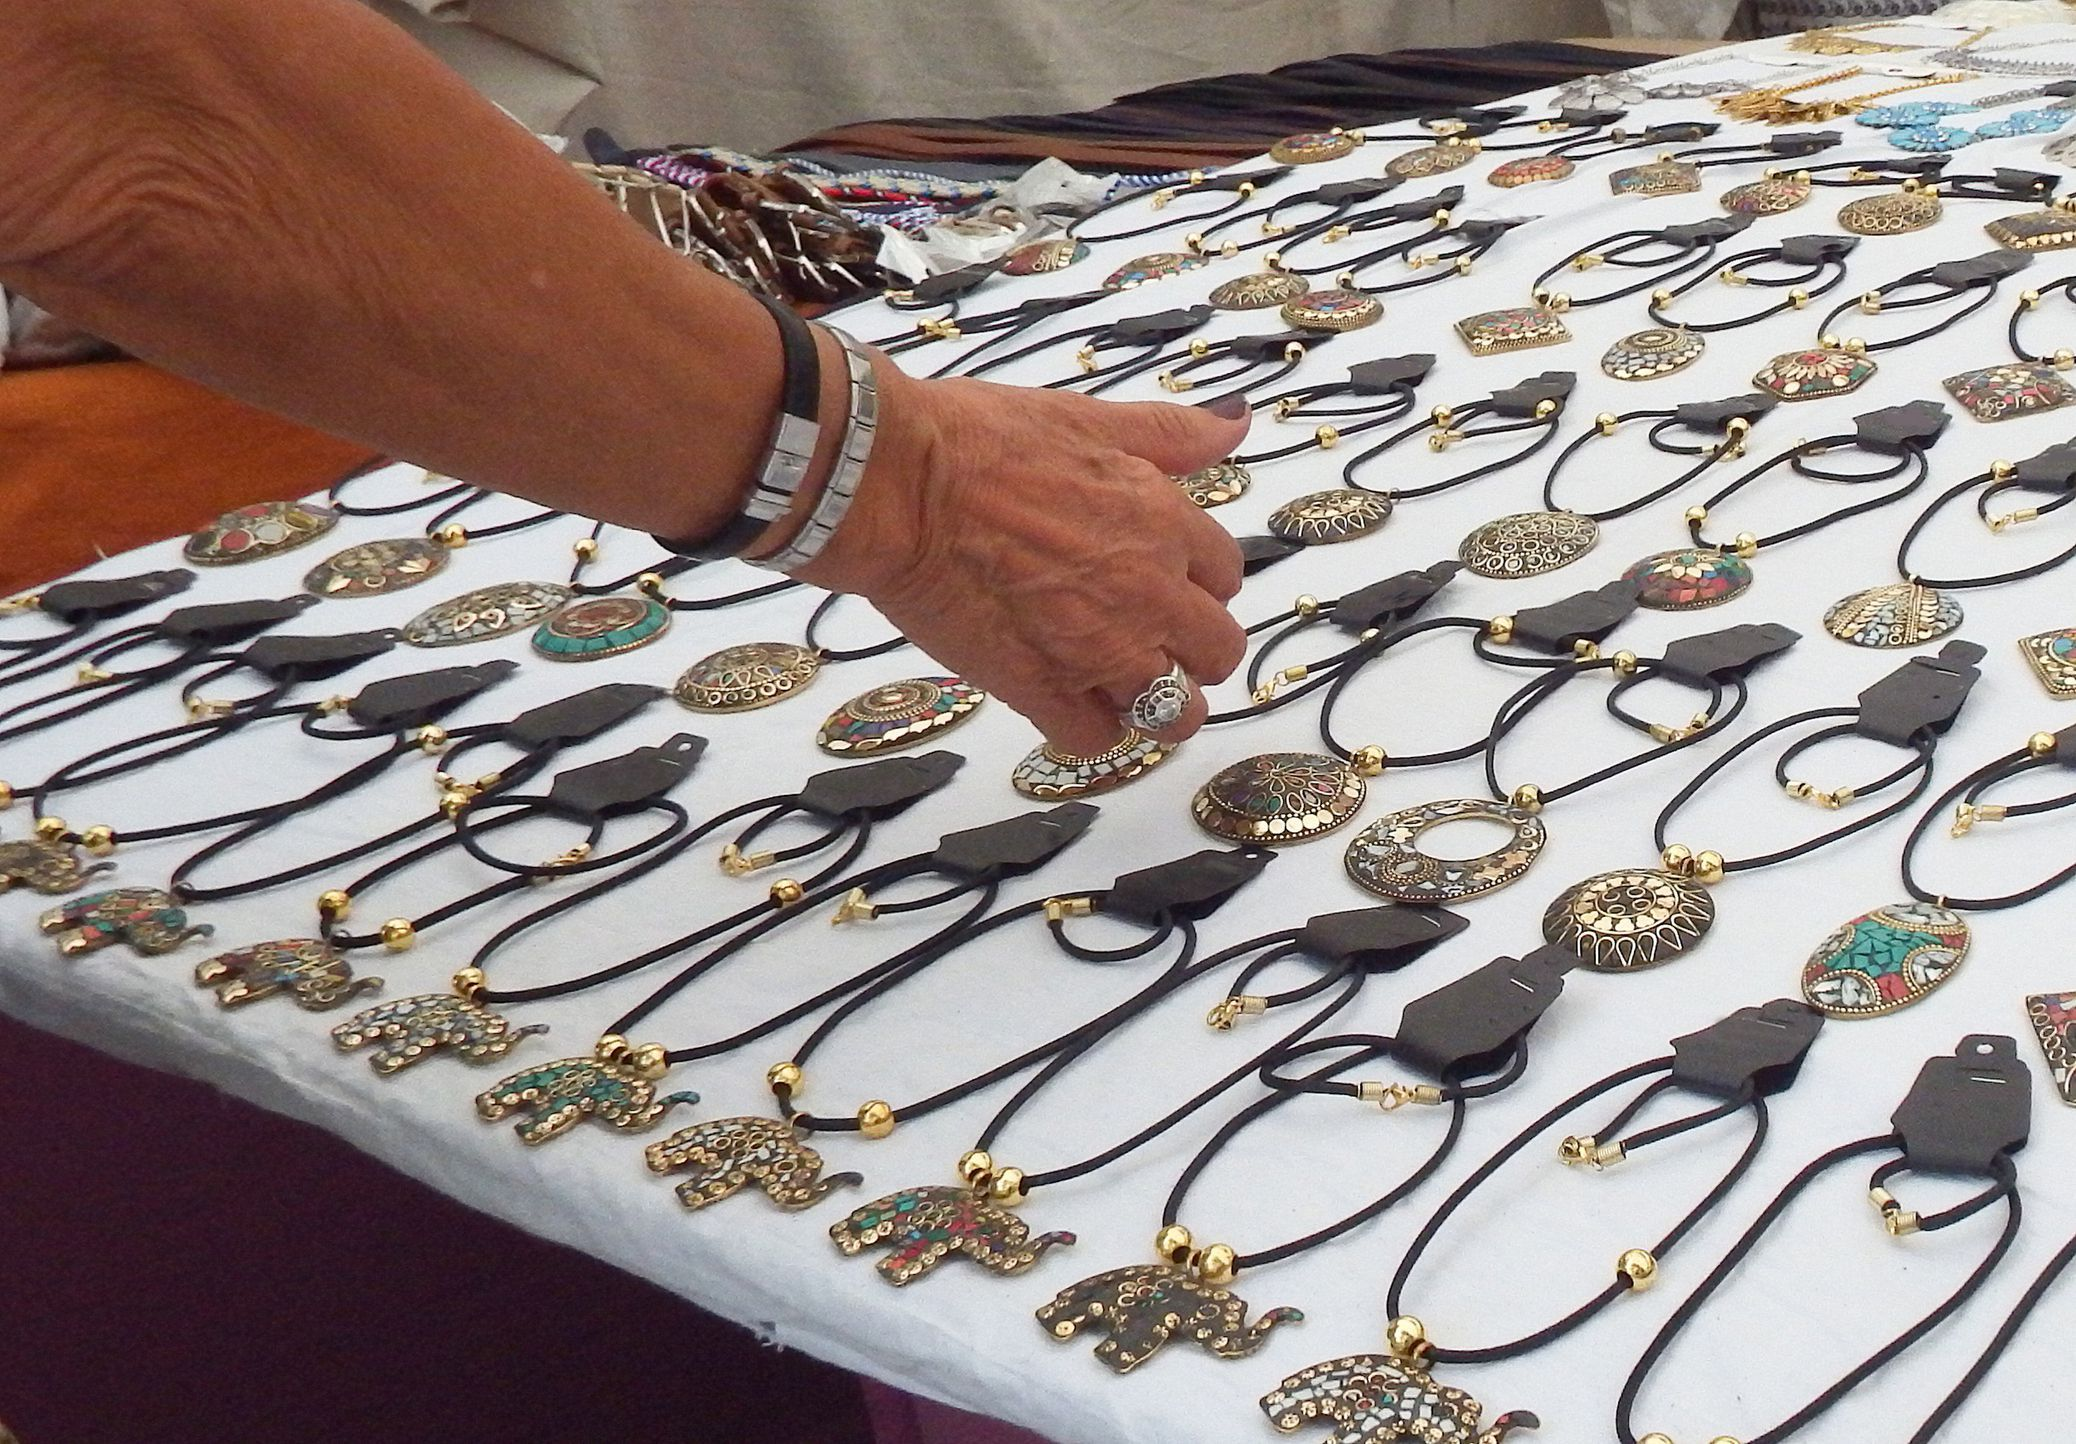 34+ How to sell jewelry online safely ideas